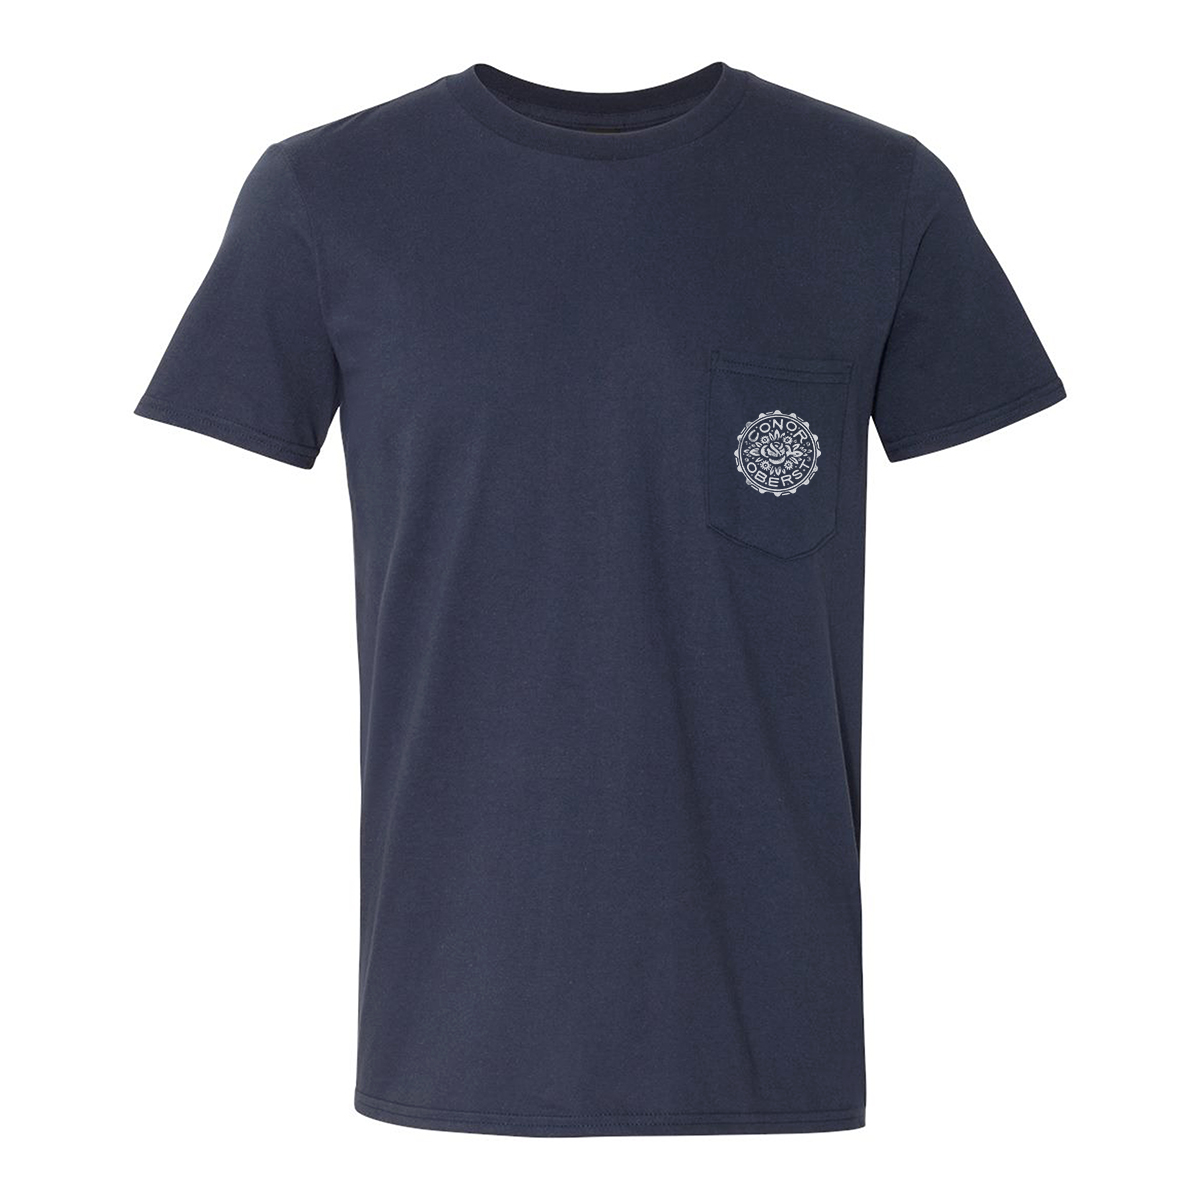 Floral Stamp Tee - Navy Tee - Conor Oberst